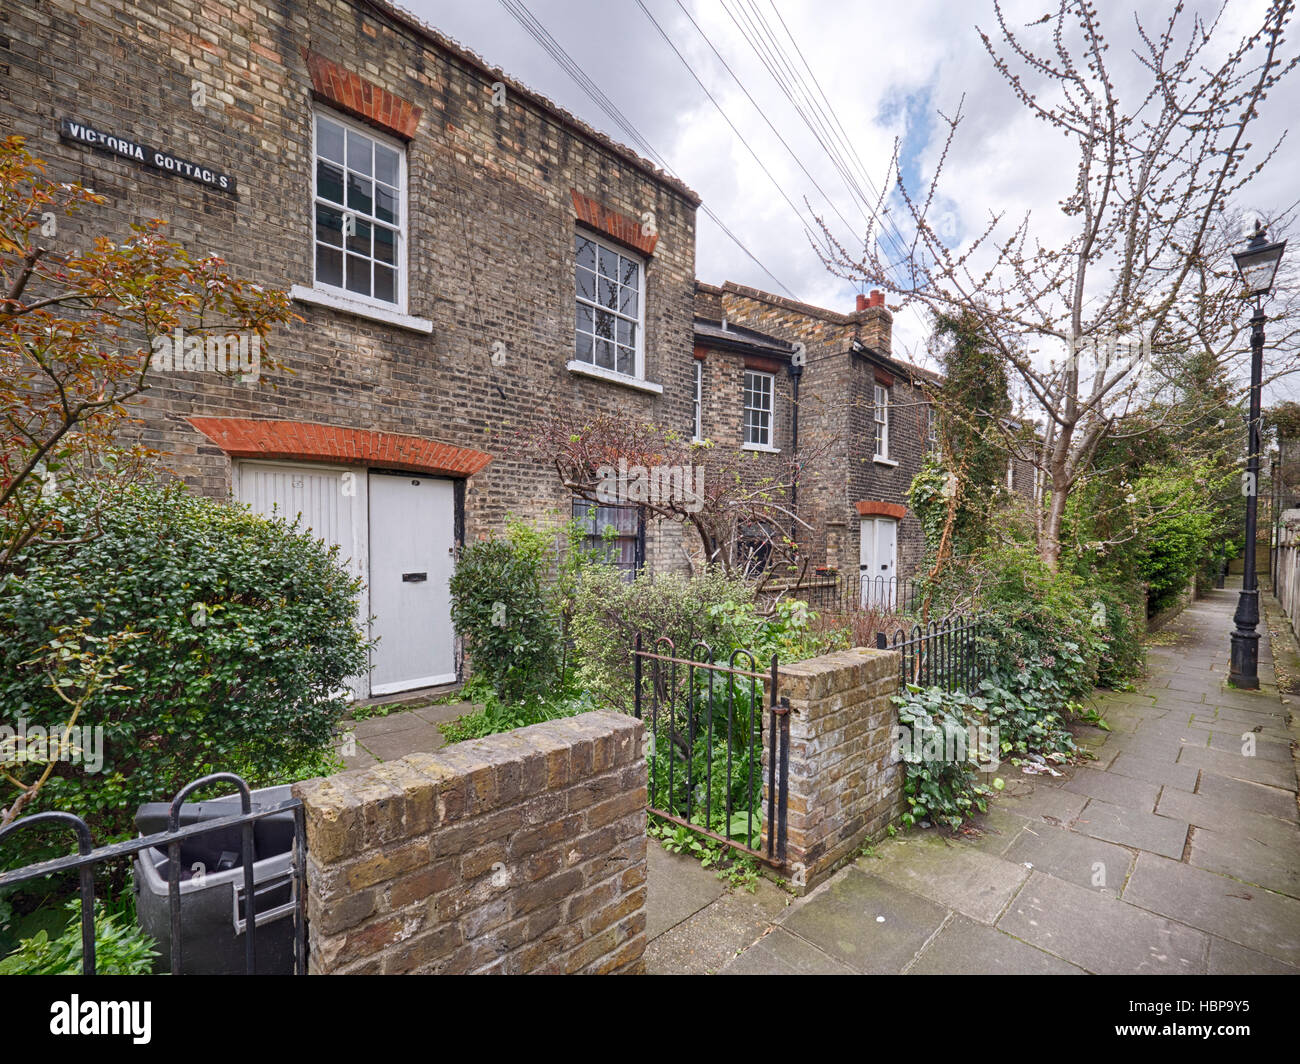 Victoria Cottages, Whitechapel an example of early philanthropic social housing built in 1858 - Stock Image